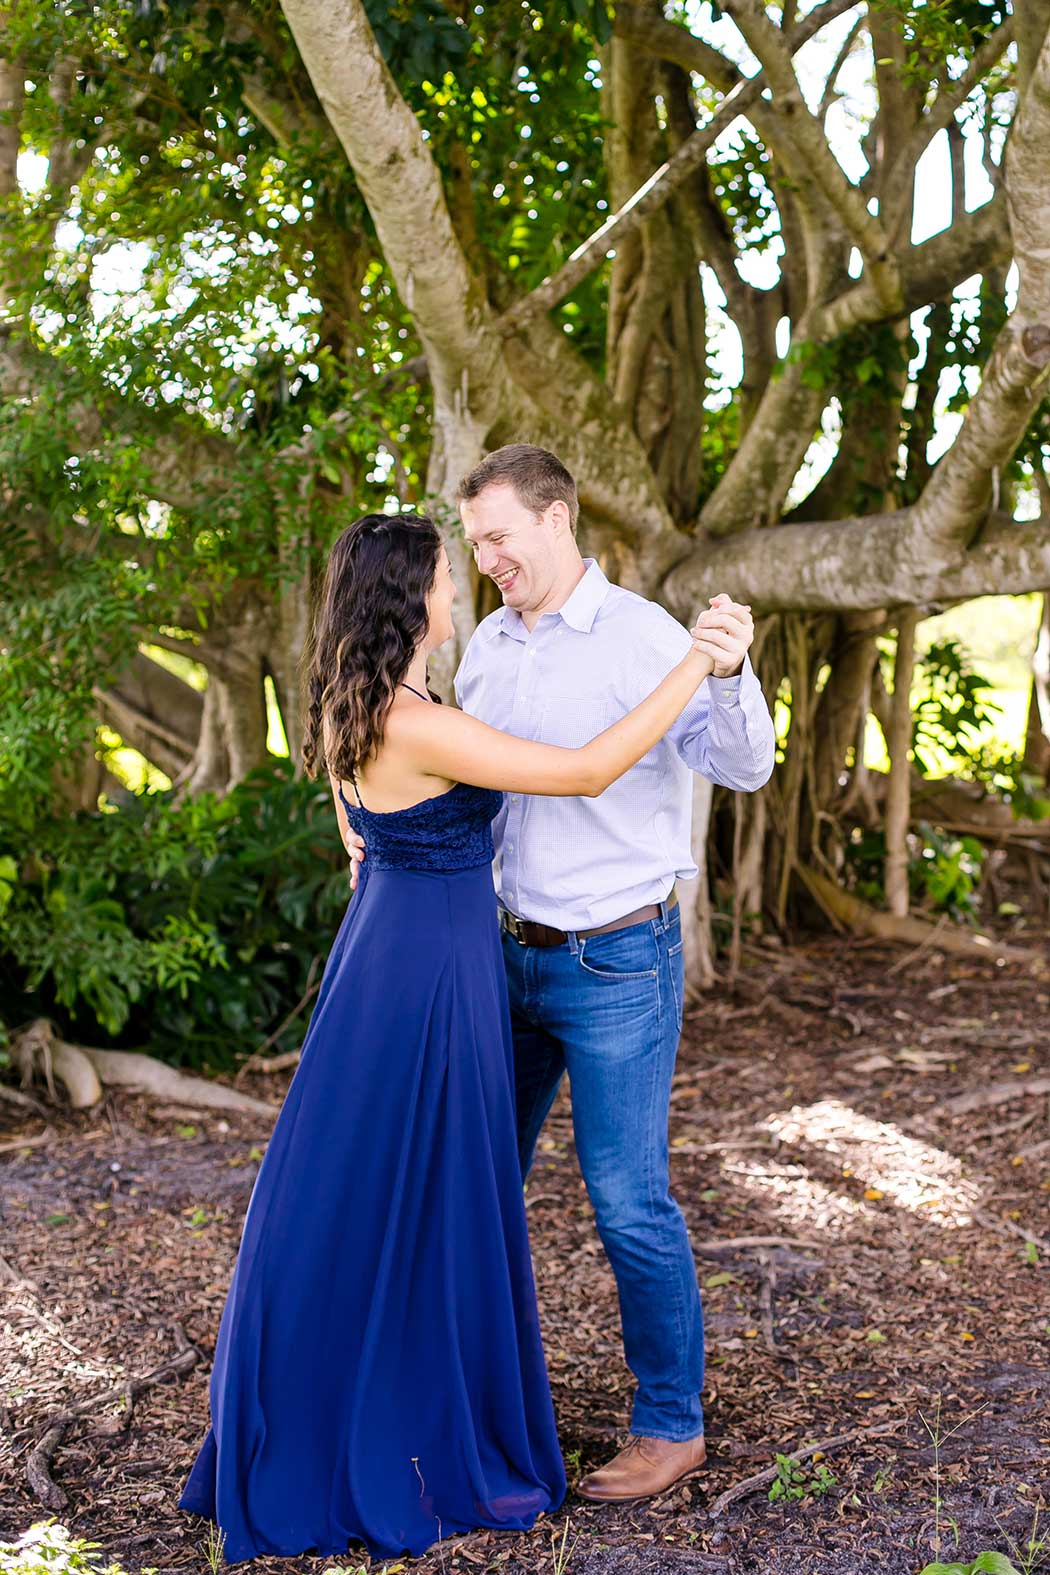 unique photograph of engaged couple dancing in front of large tree | engagement photoshoot fort lauderdale | fort lauderdale engagement photographer